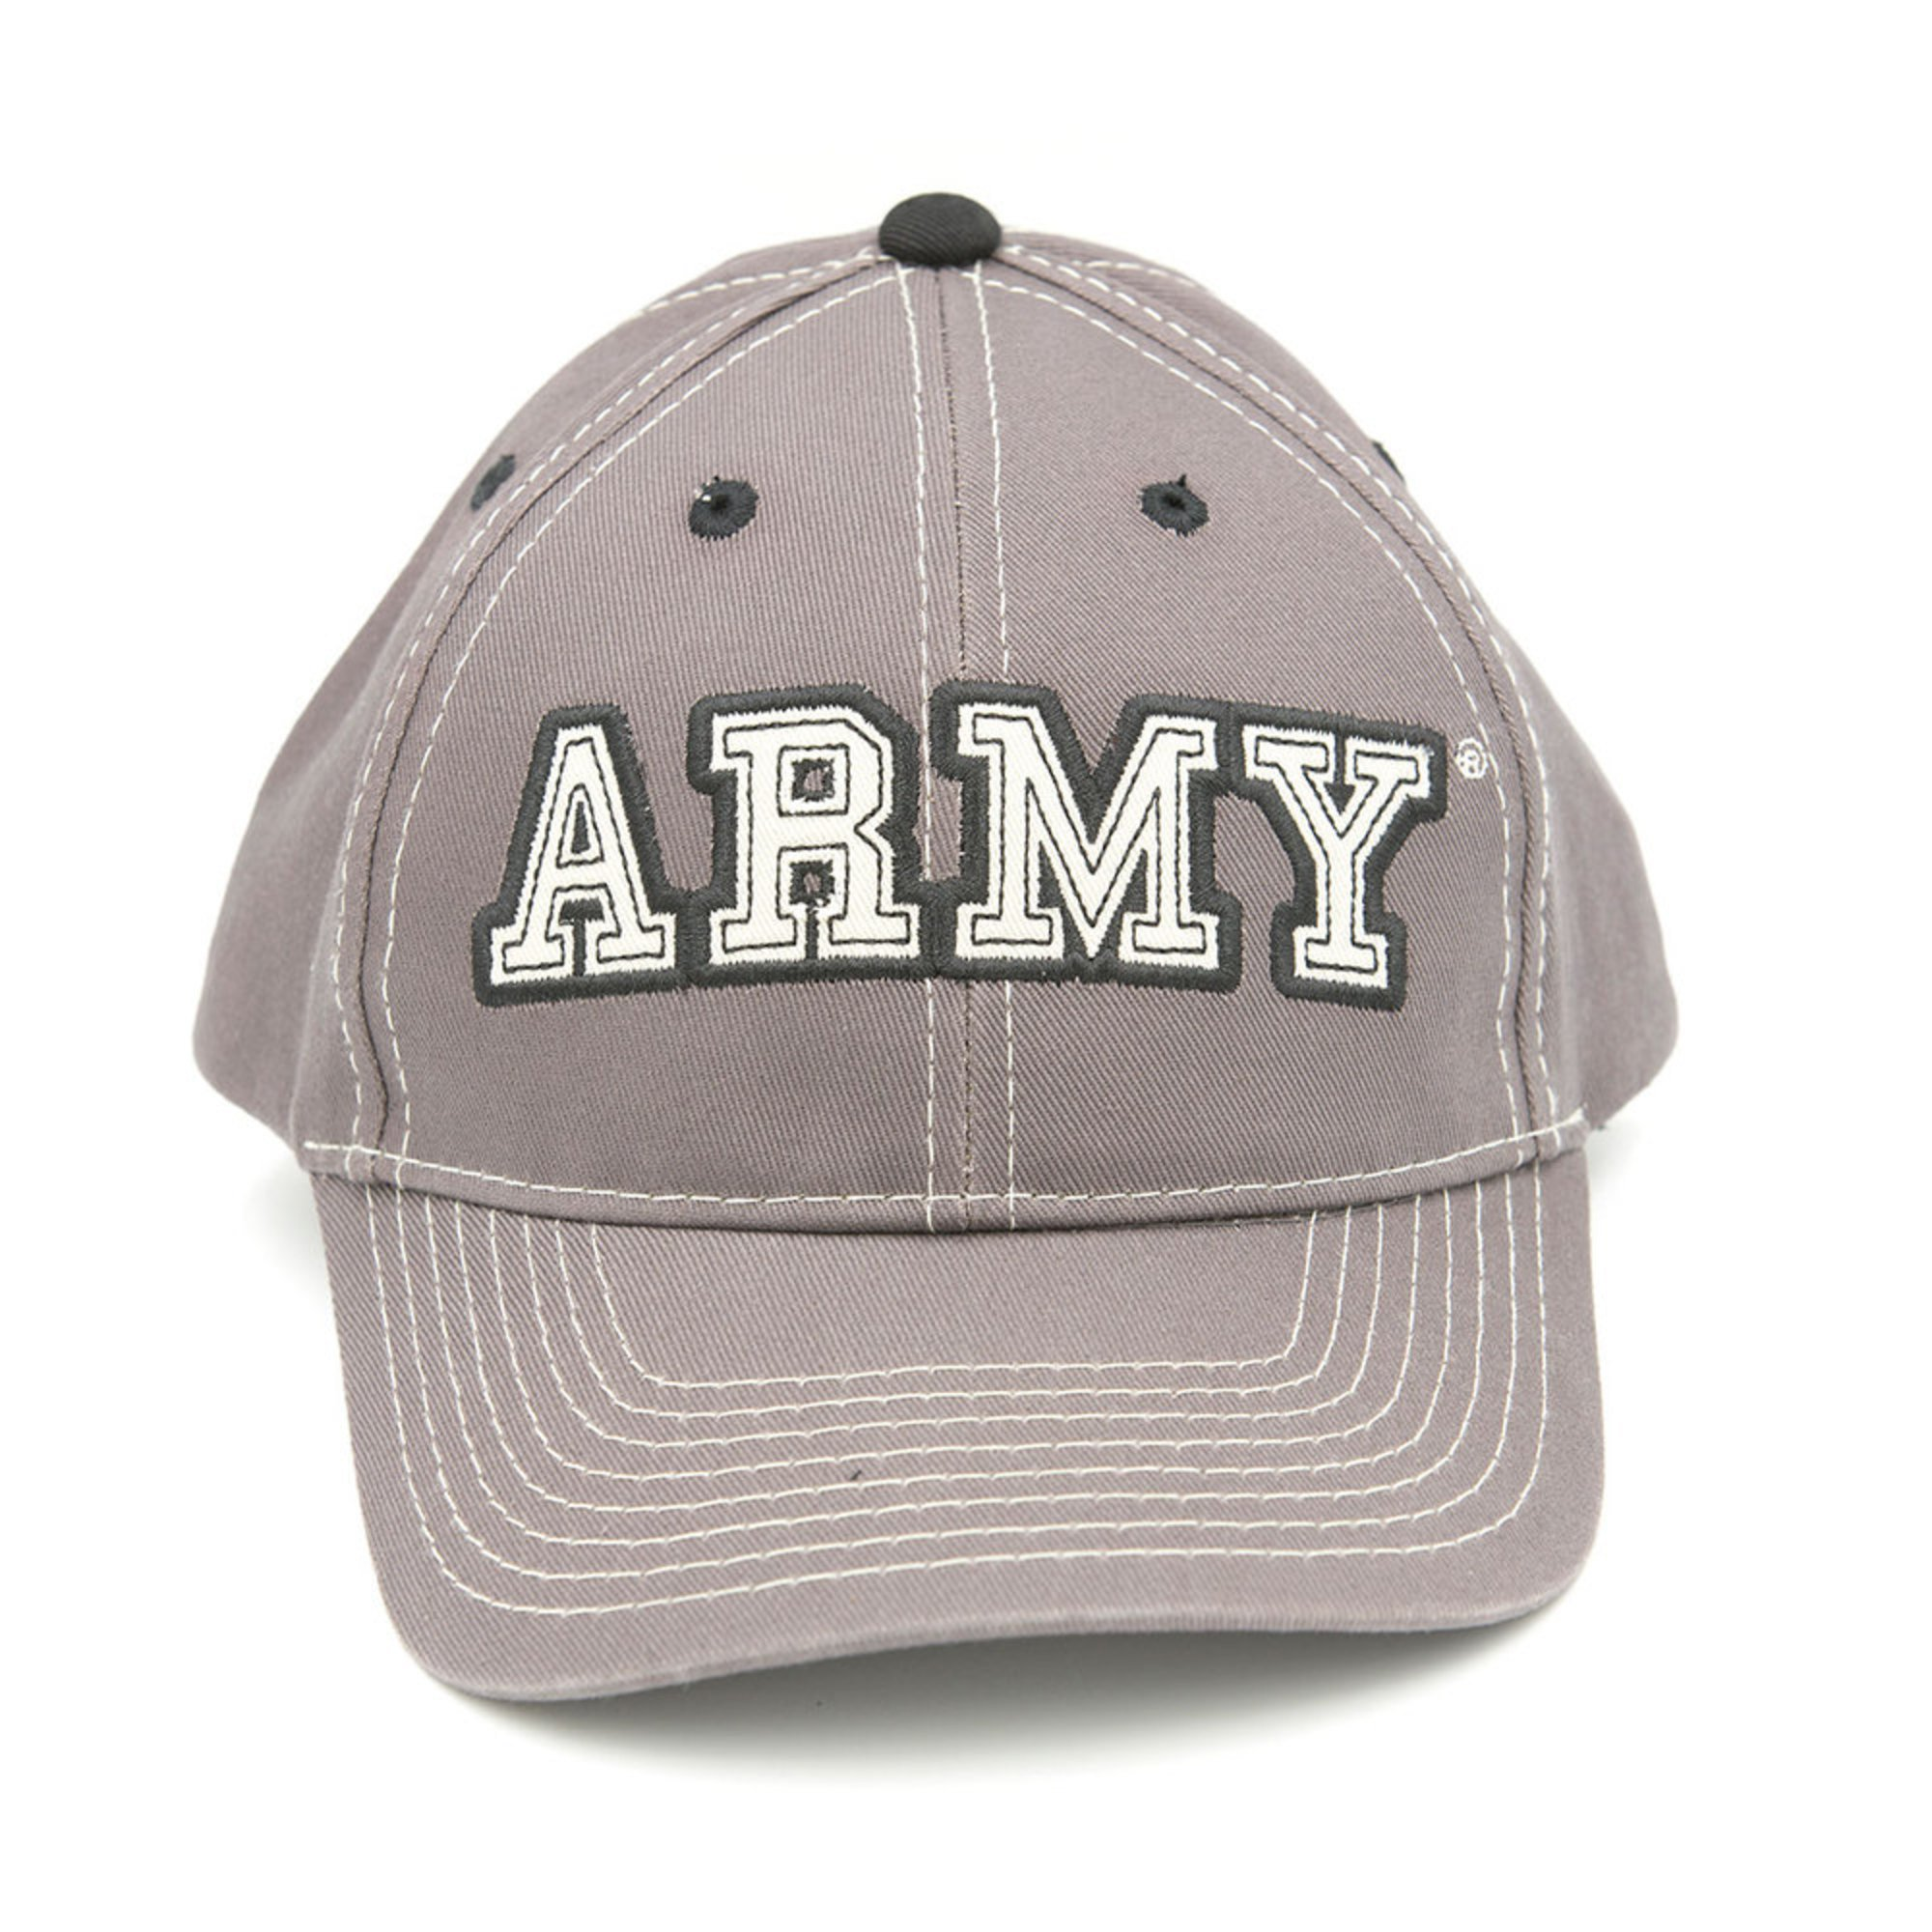 2a9230671 Black Ink Men's Army Classic Hat | Navy Pride Hats & Beanies ...